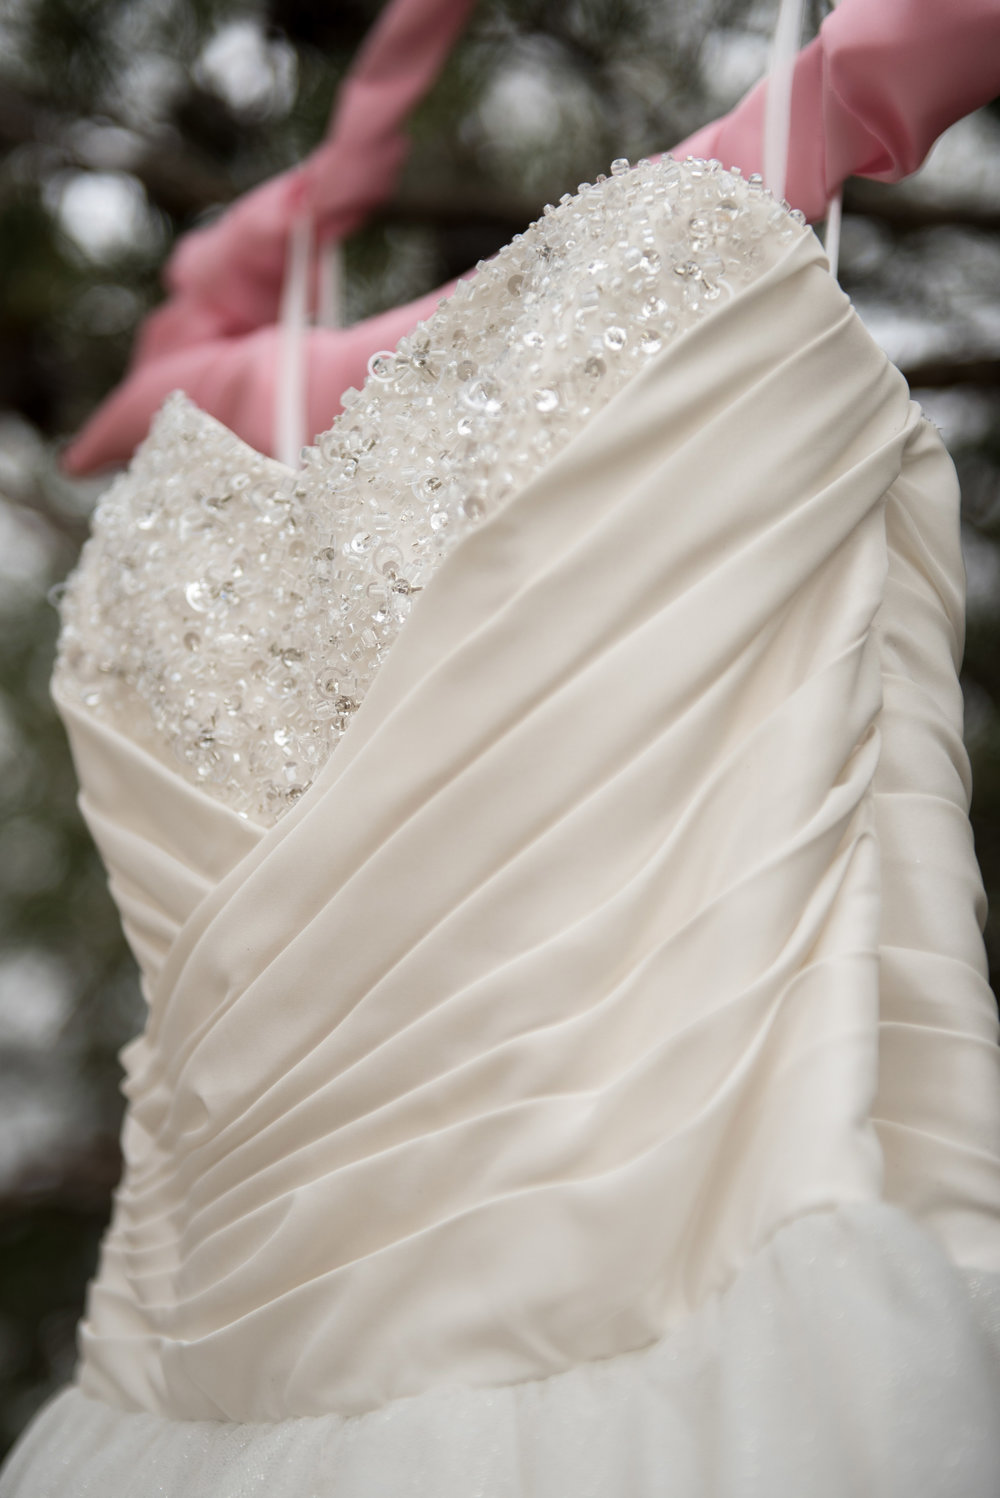 Detail of Jessica's dress - it was stunning!